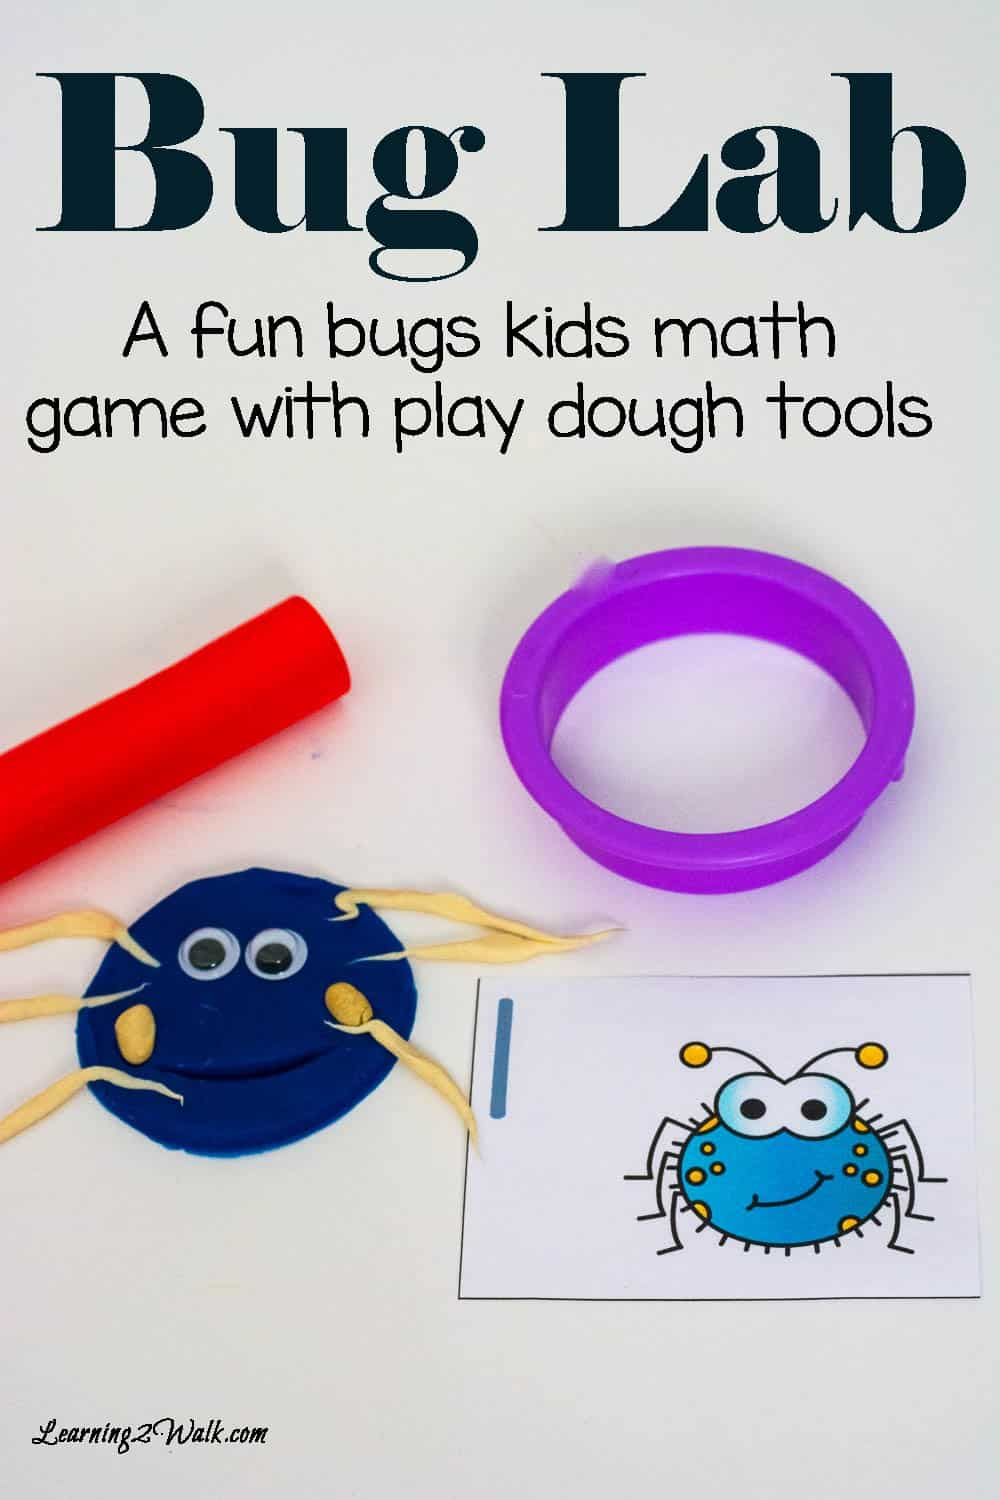 This fun bugs kids math game was a huge hit! It was simple and I cannot wait to do more activities like this.